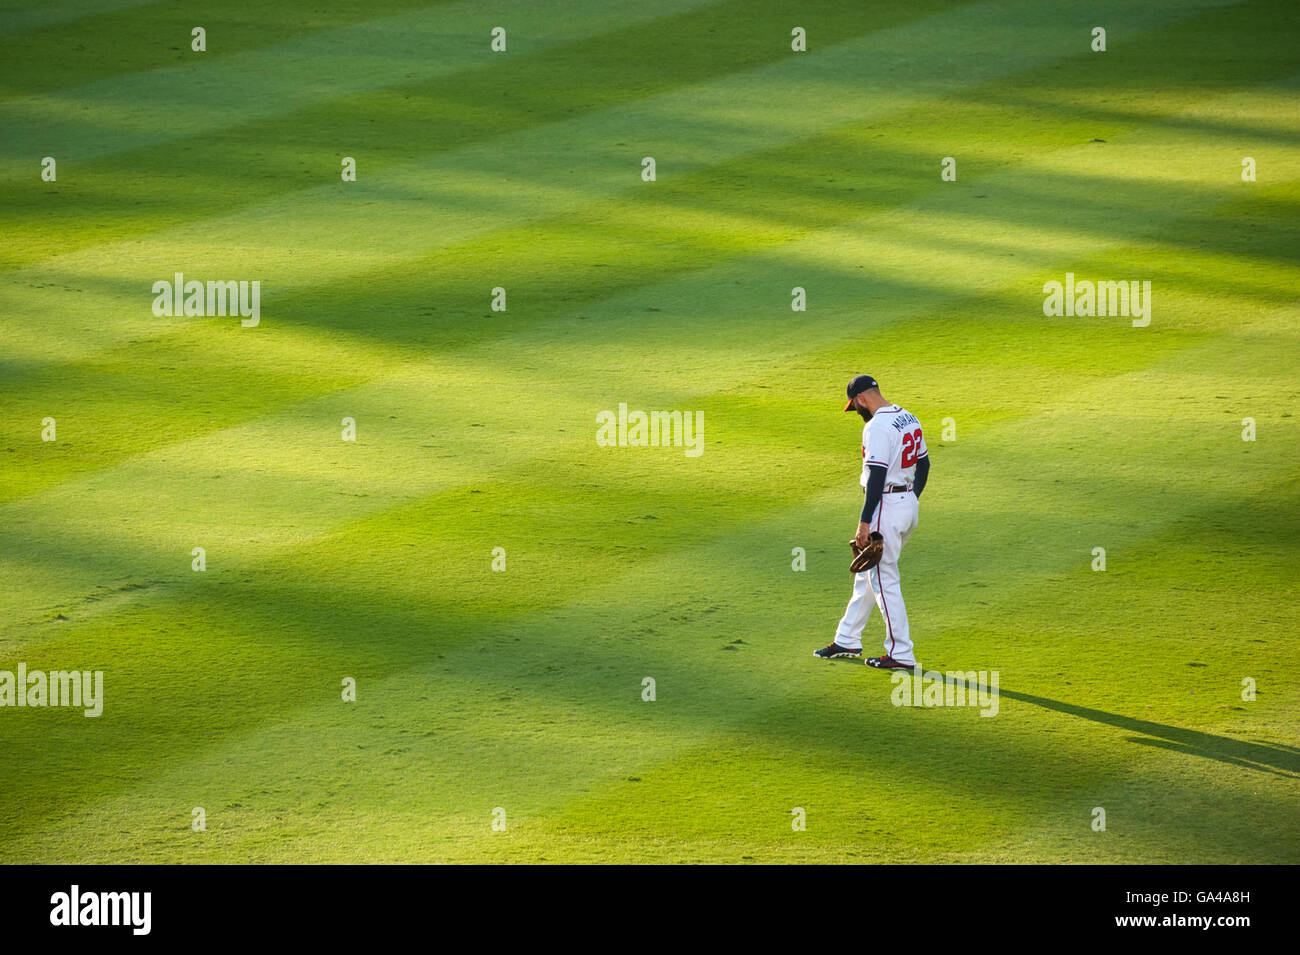 Atlanta Braves right-fielder, Nick Markakis, standing in the outfield as the sun sets on Atlanta, Georgia's - Stock Image